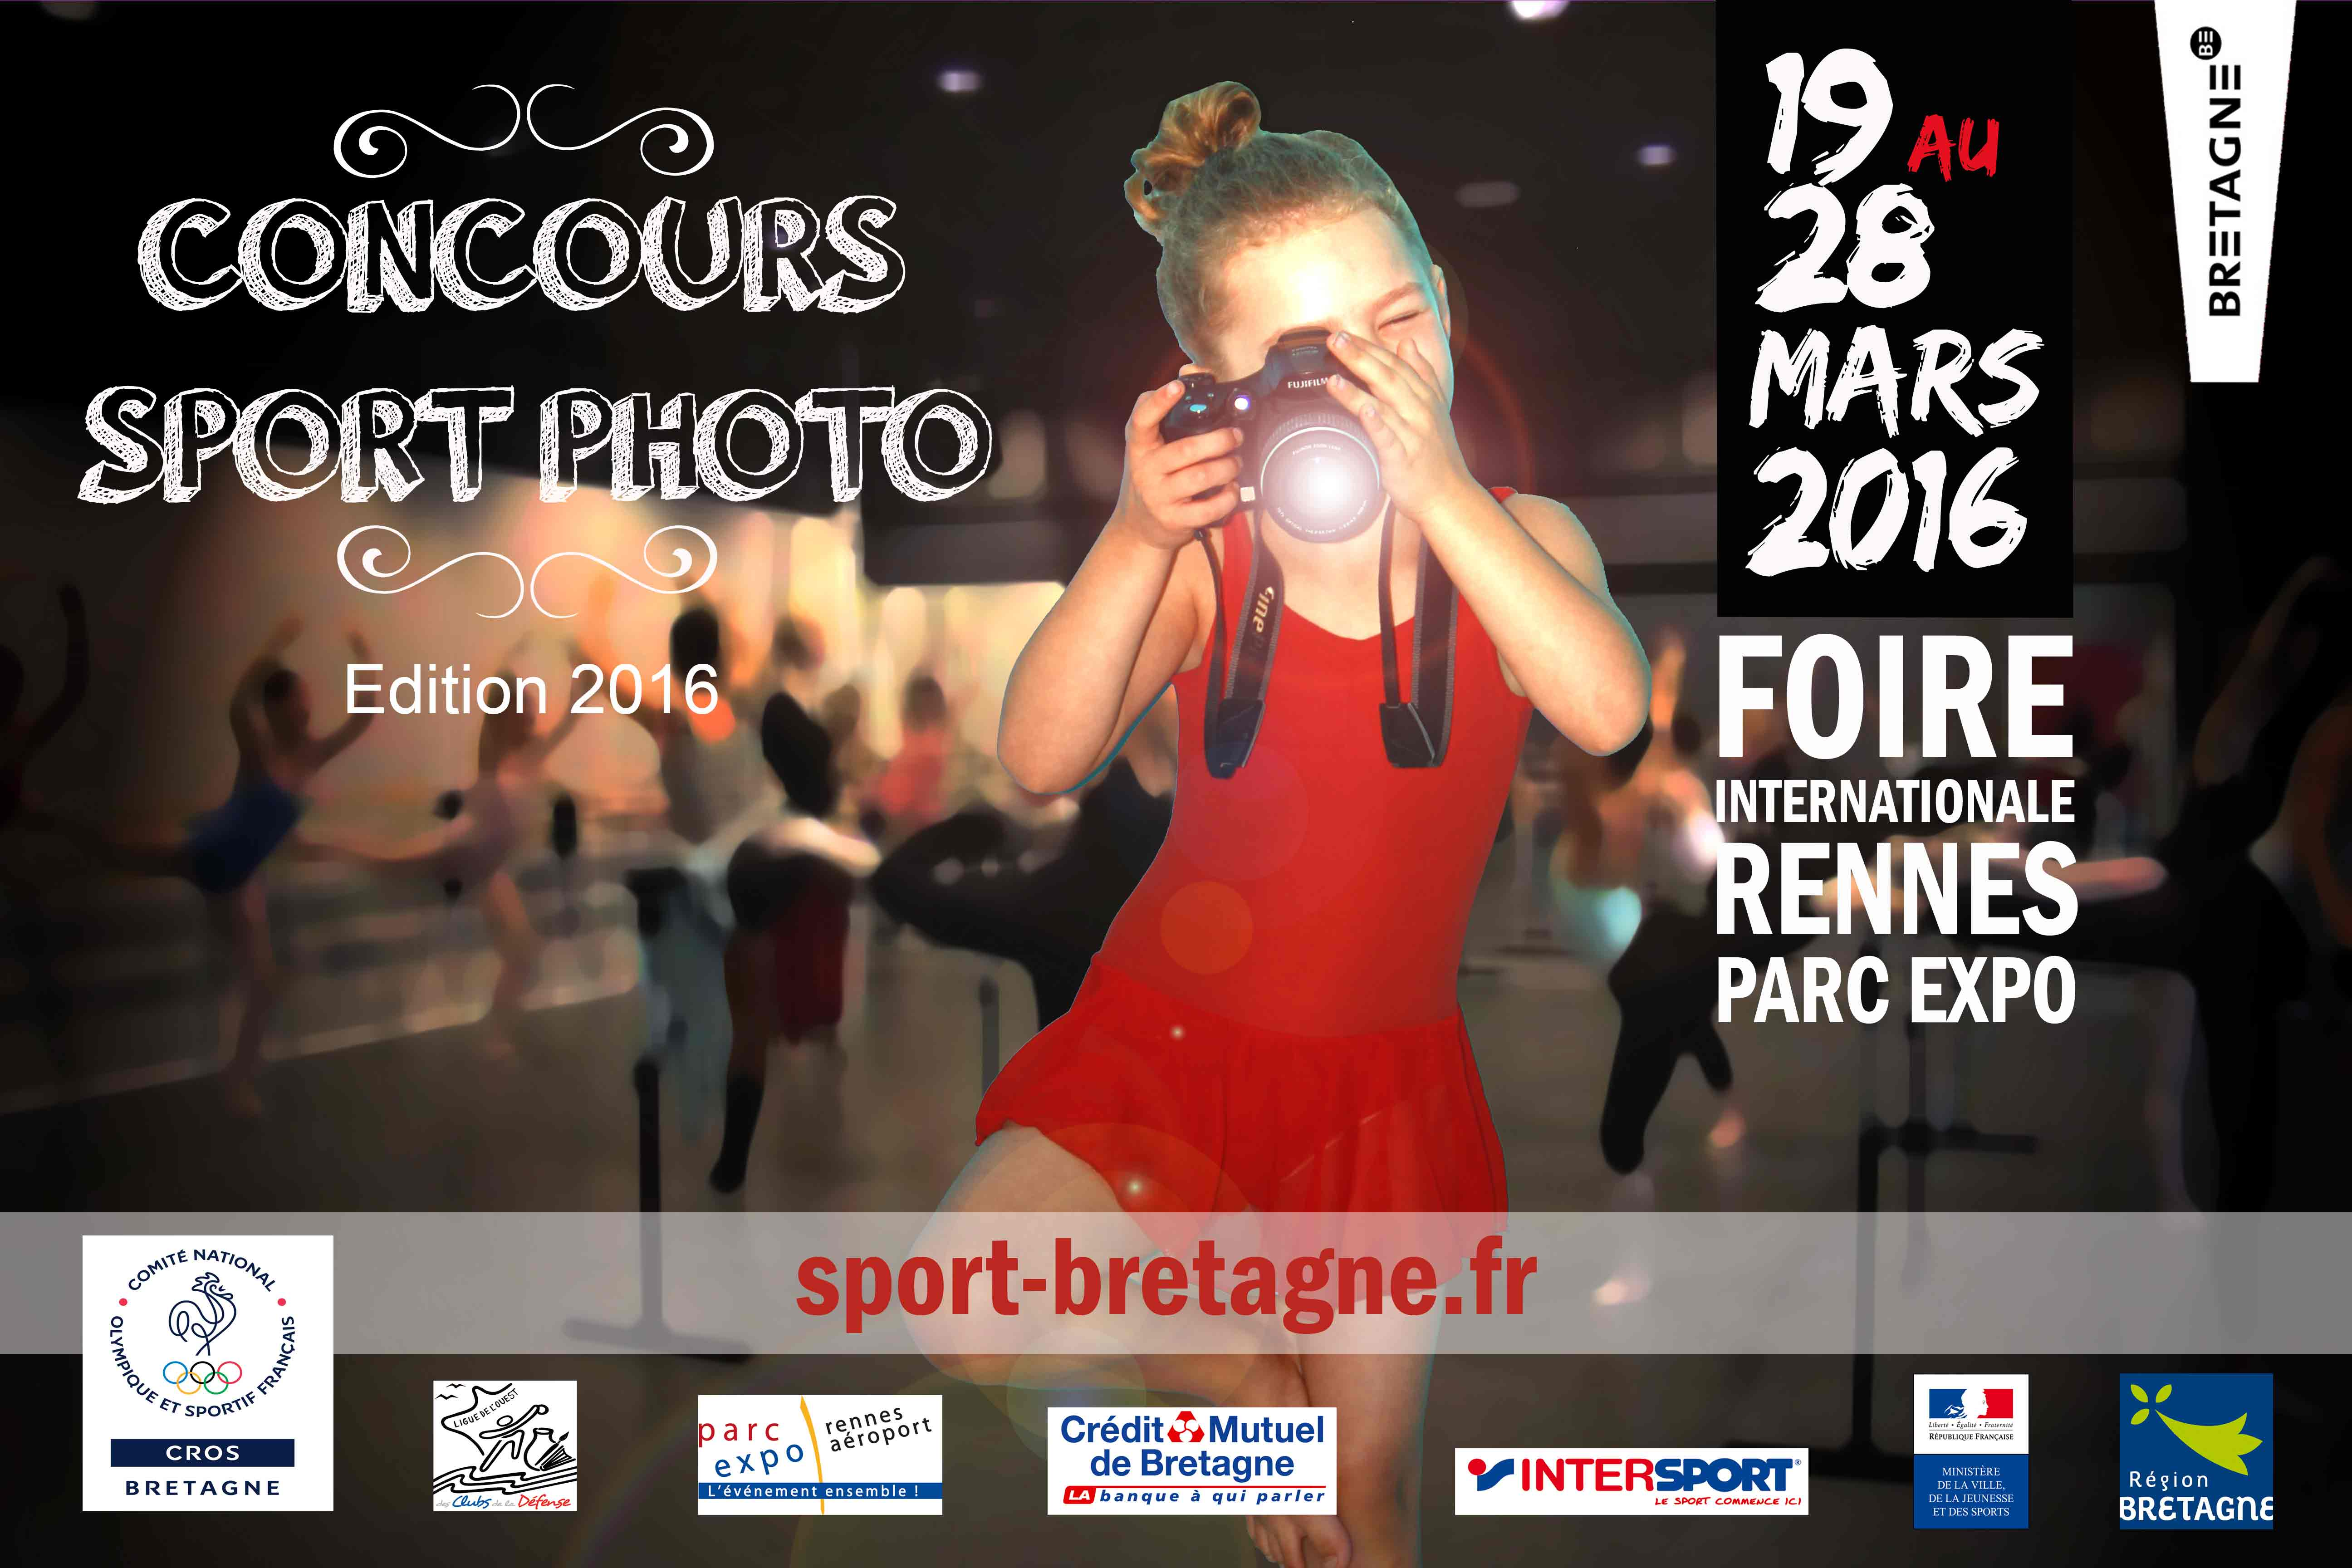 Concours Sport & Photo 2016